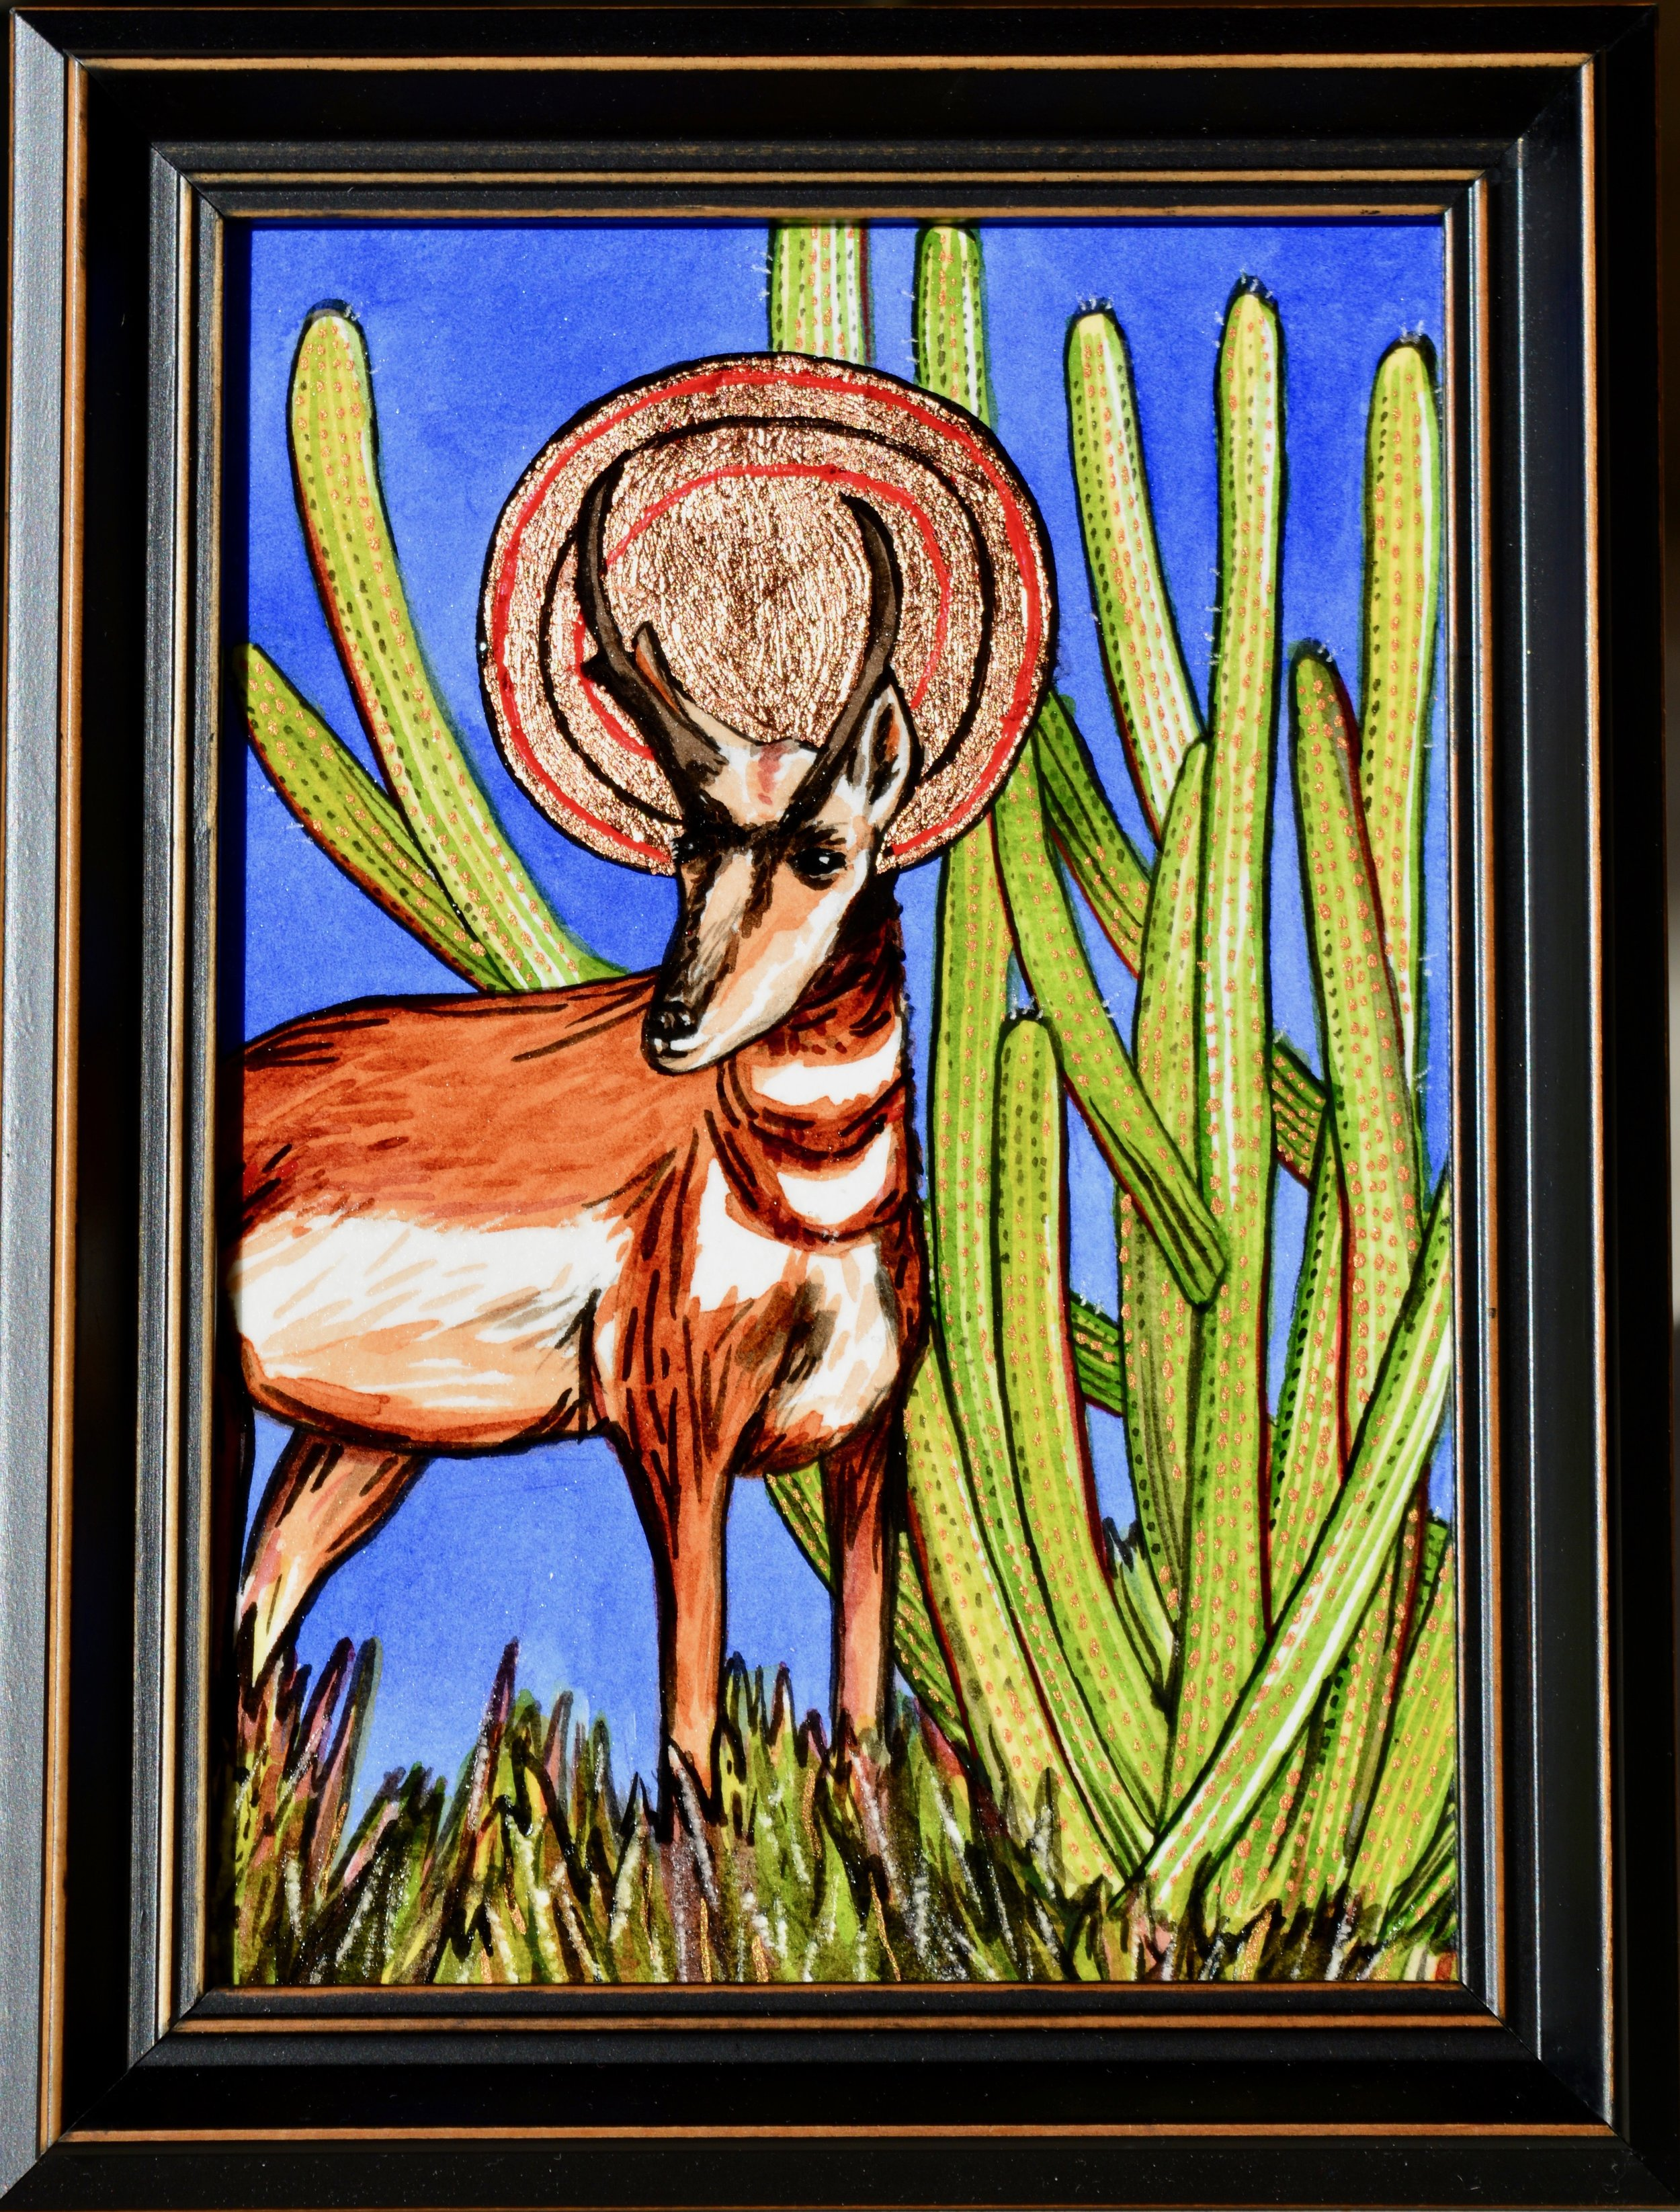 Sonoricons: Sonoran Pronghorn Antelope Available for purchase at  Raices Taller 222 Art Gallery & Workshop  during the month of December 2018